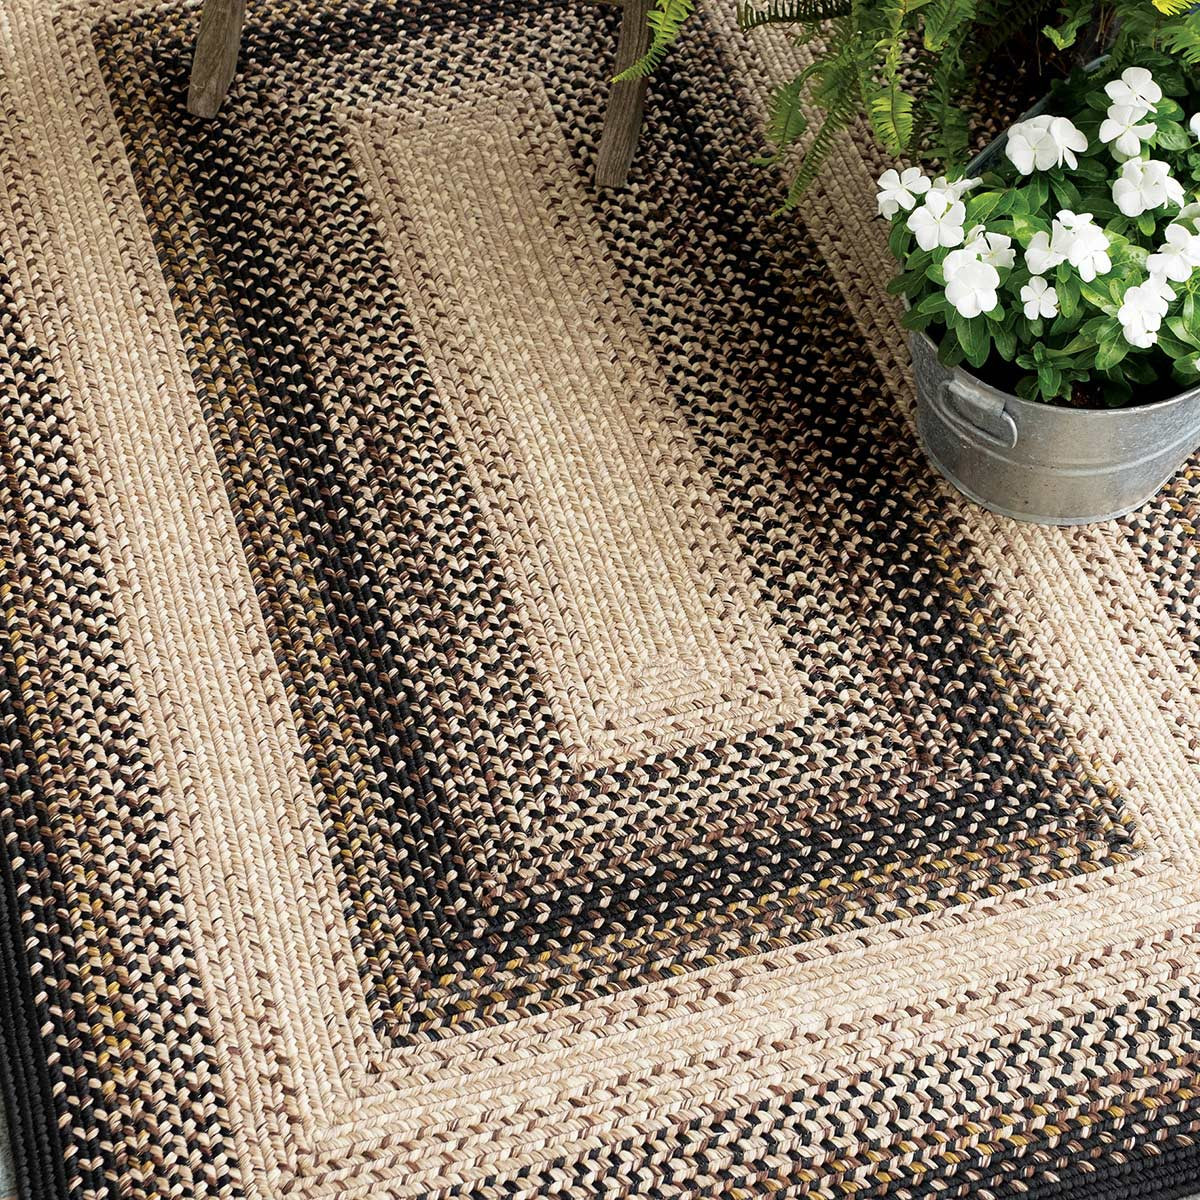 Buy Black Mist Outdoor Braided Rugs Online Homespice